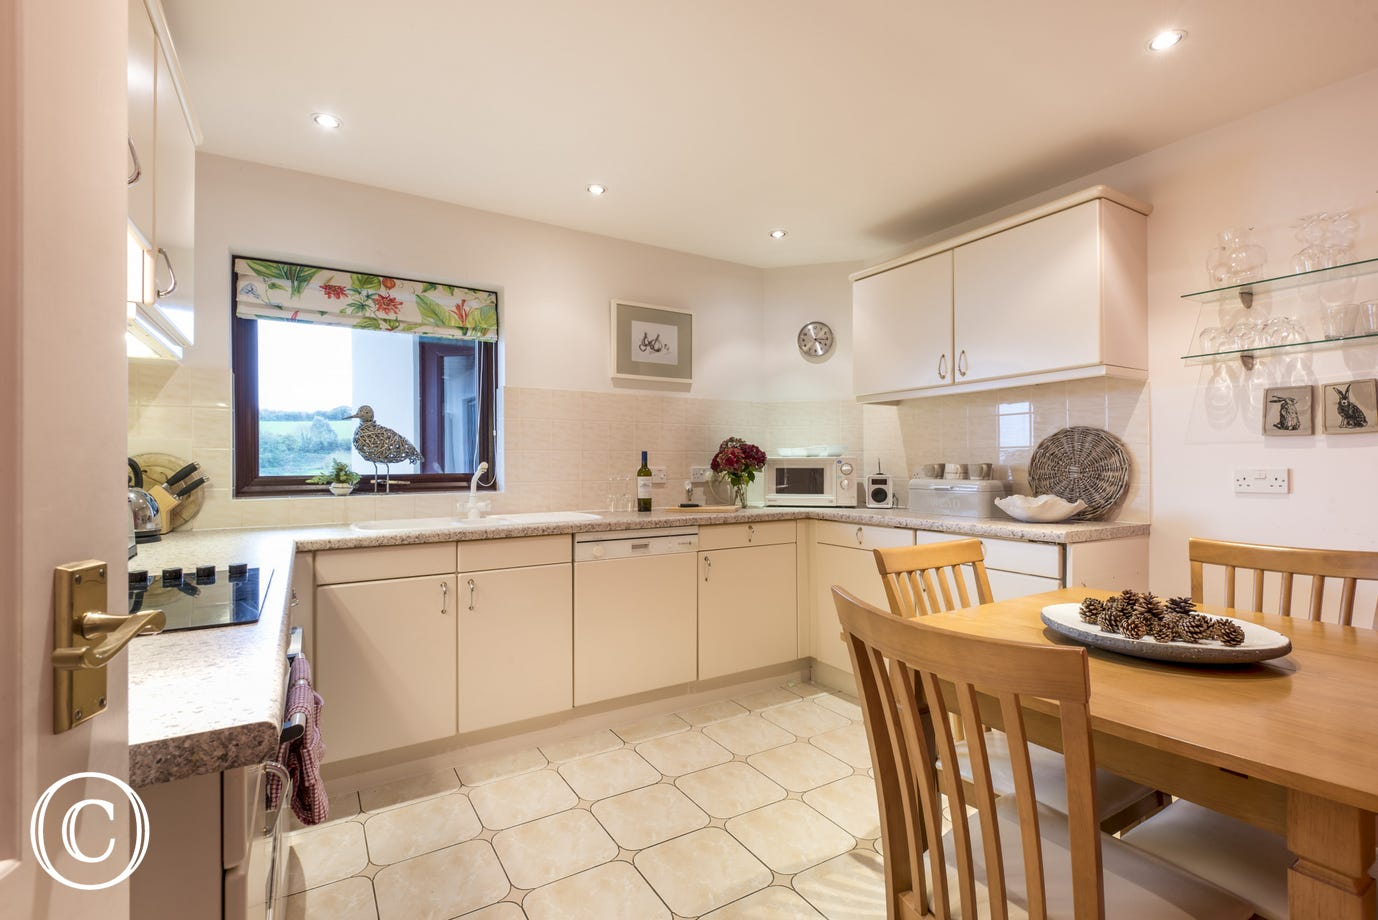 a spacious and well-equipped kitchen with dishwasher, induction hob and oven